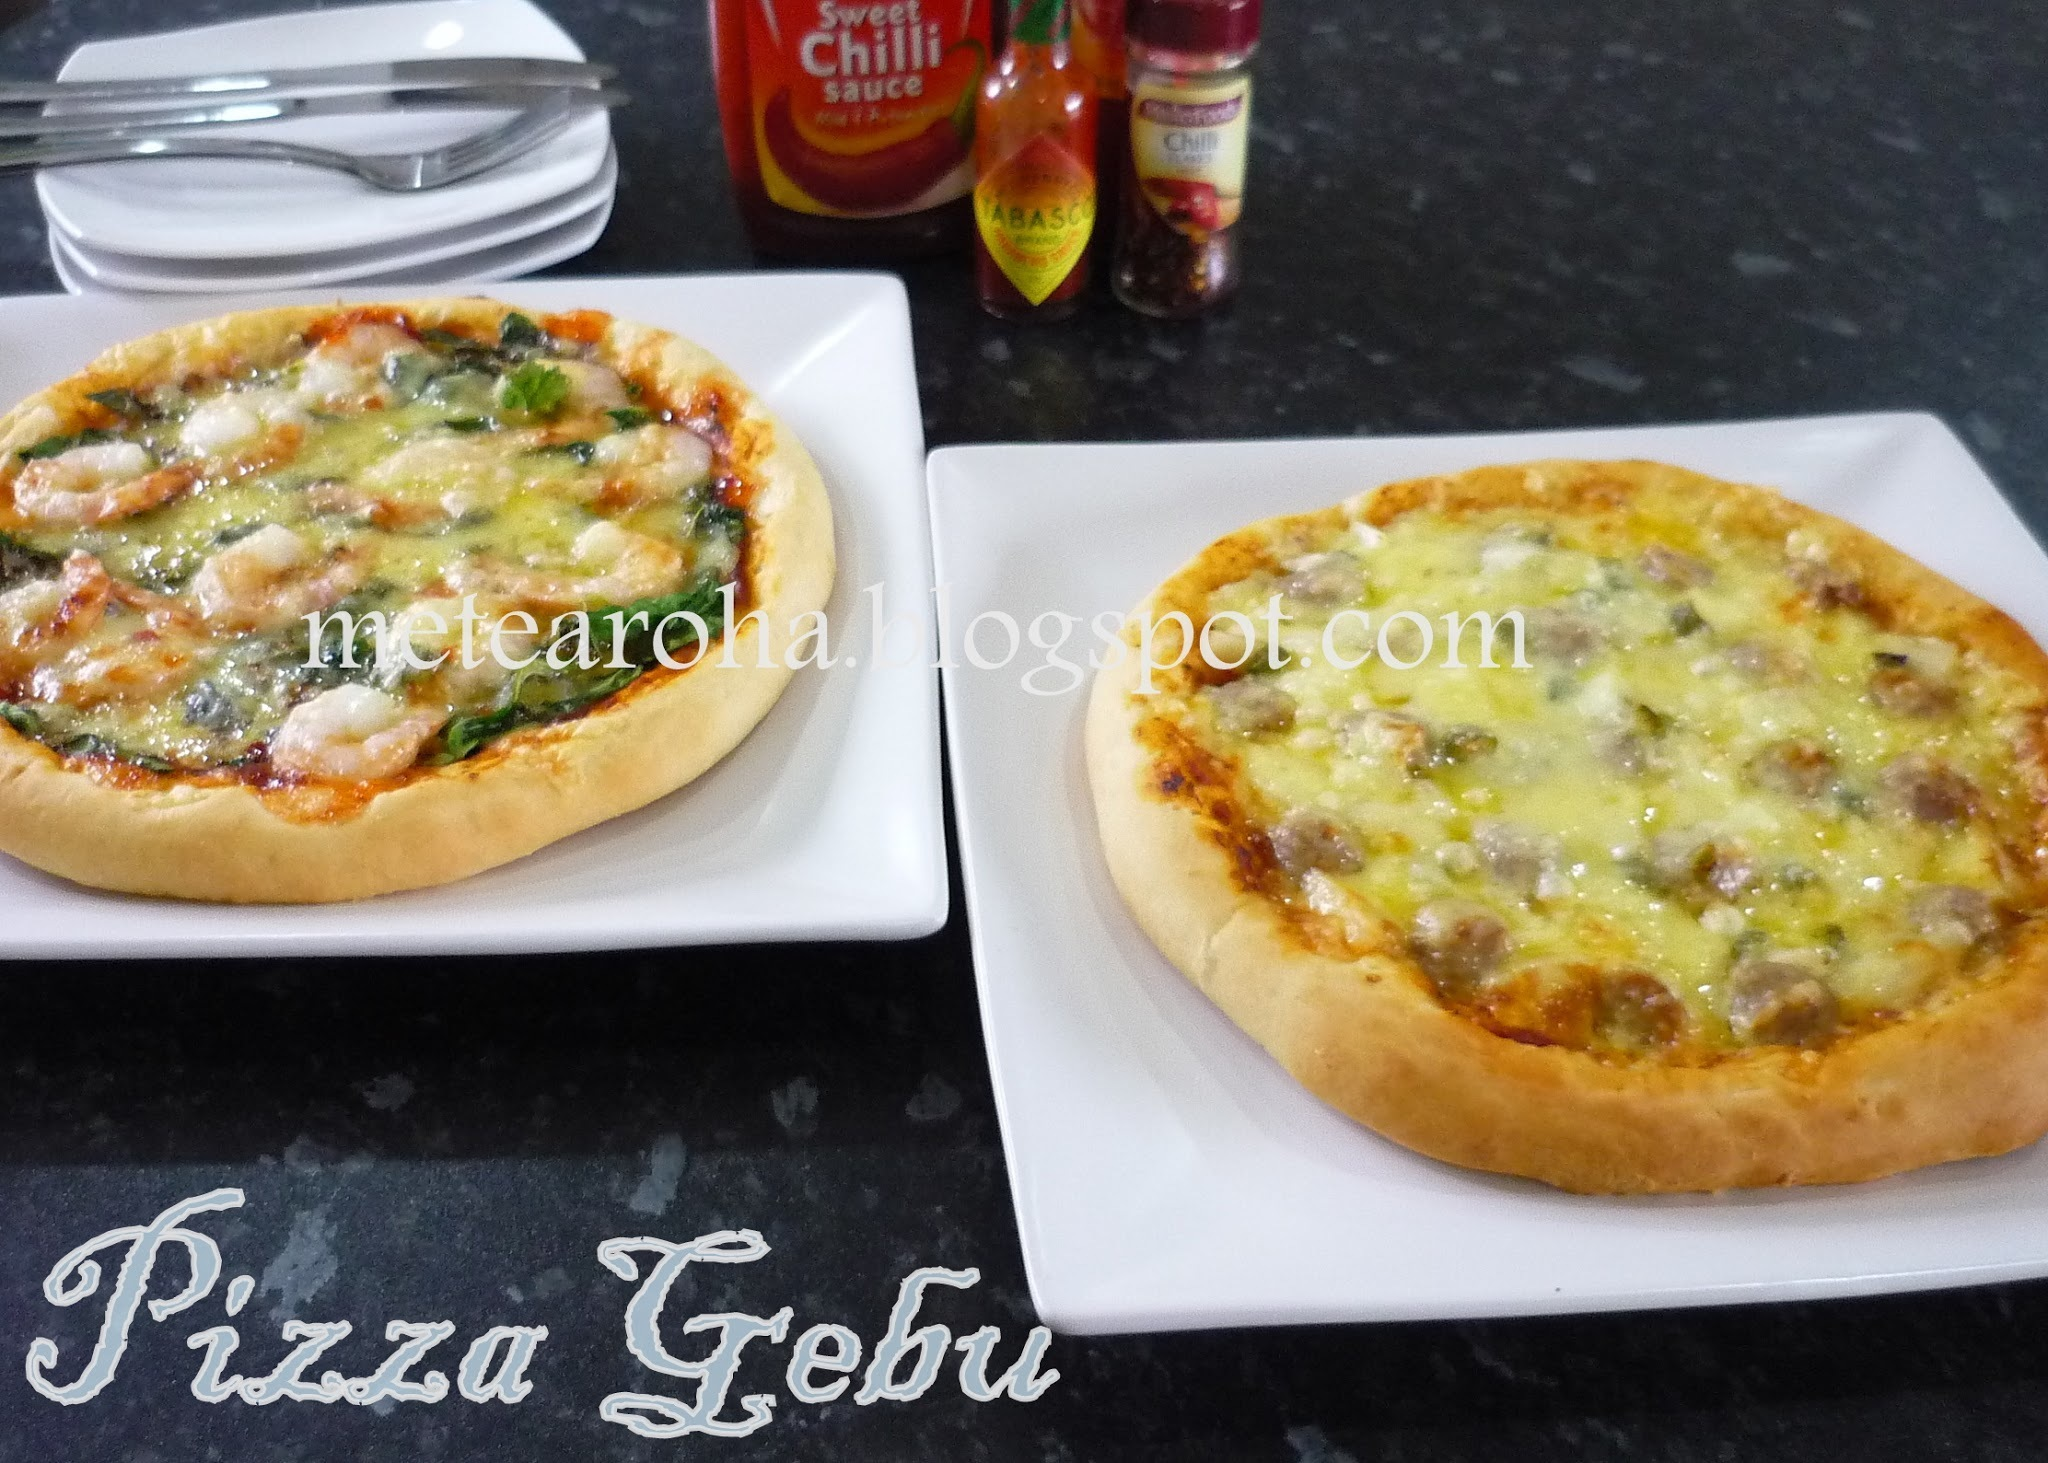 Pizza Gebu